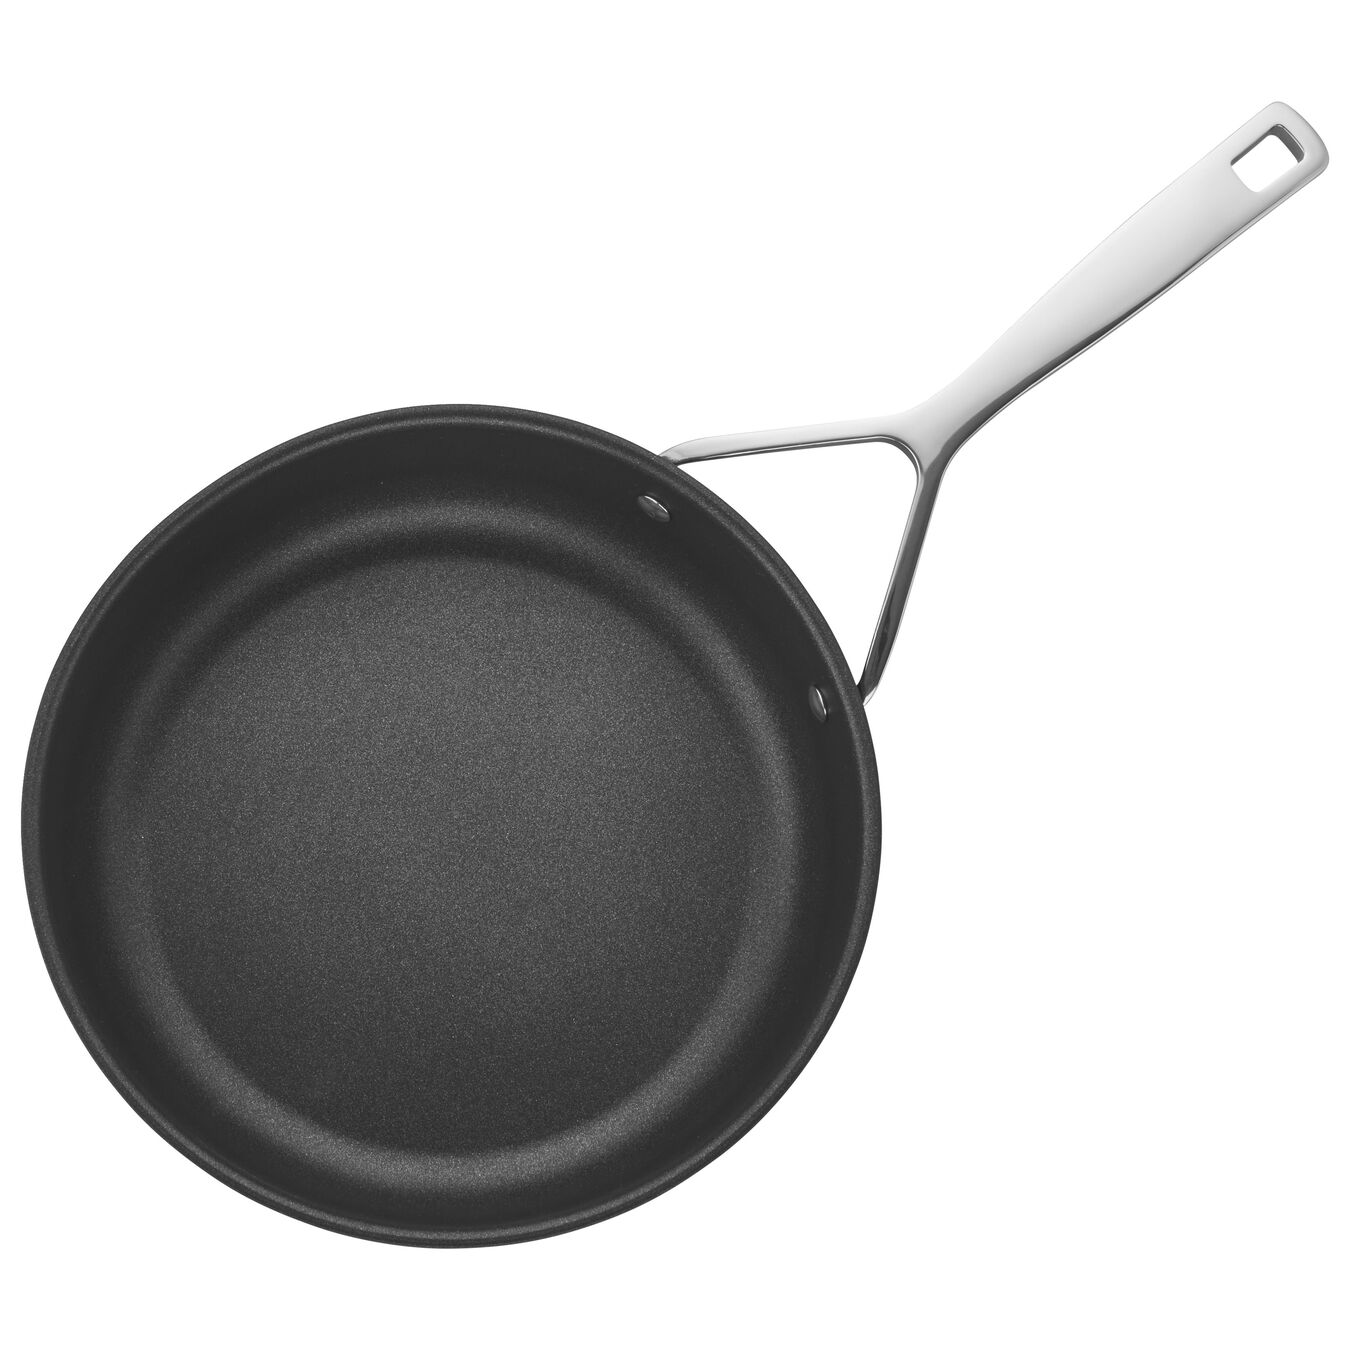 9.5-inch, Aluminum, Non-stick Frying pan high-sided,,large 2